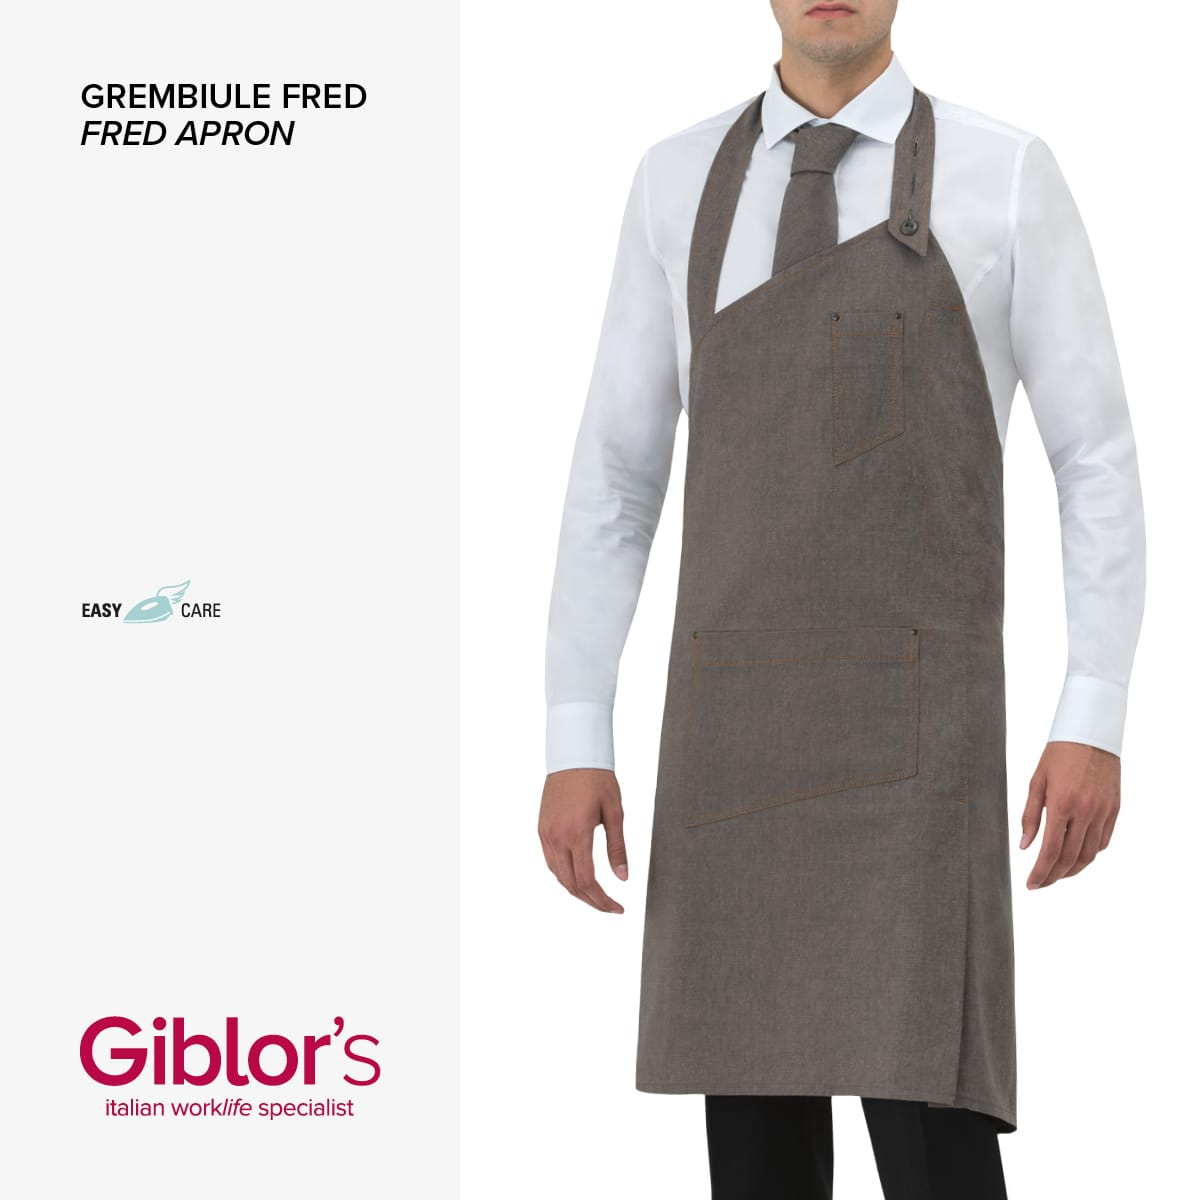 Giblor's - GREMBIULE FRED - Art 17P01H967 Marrone